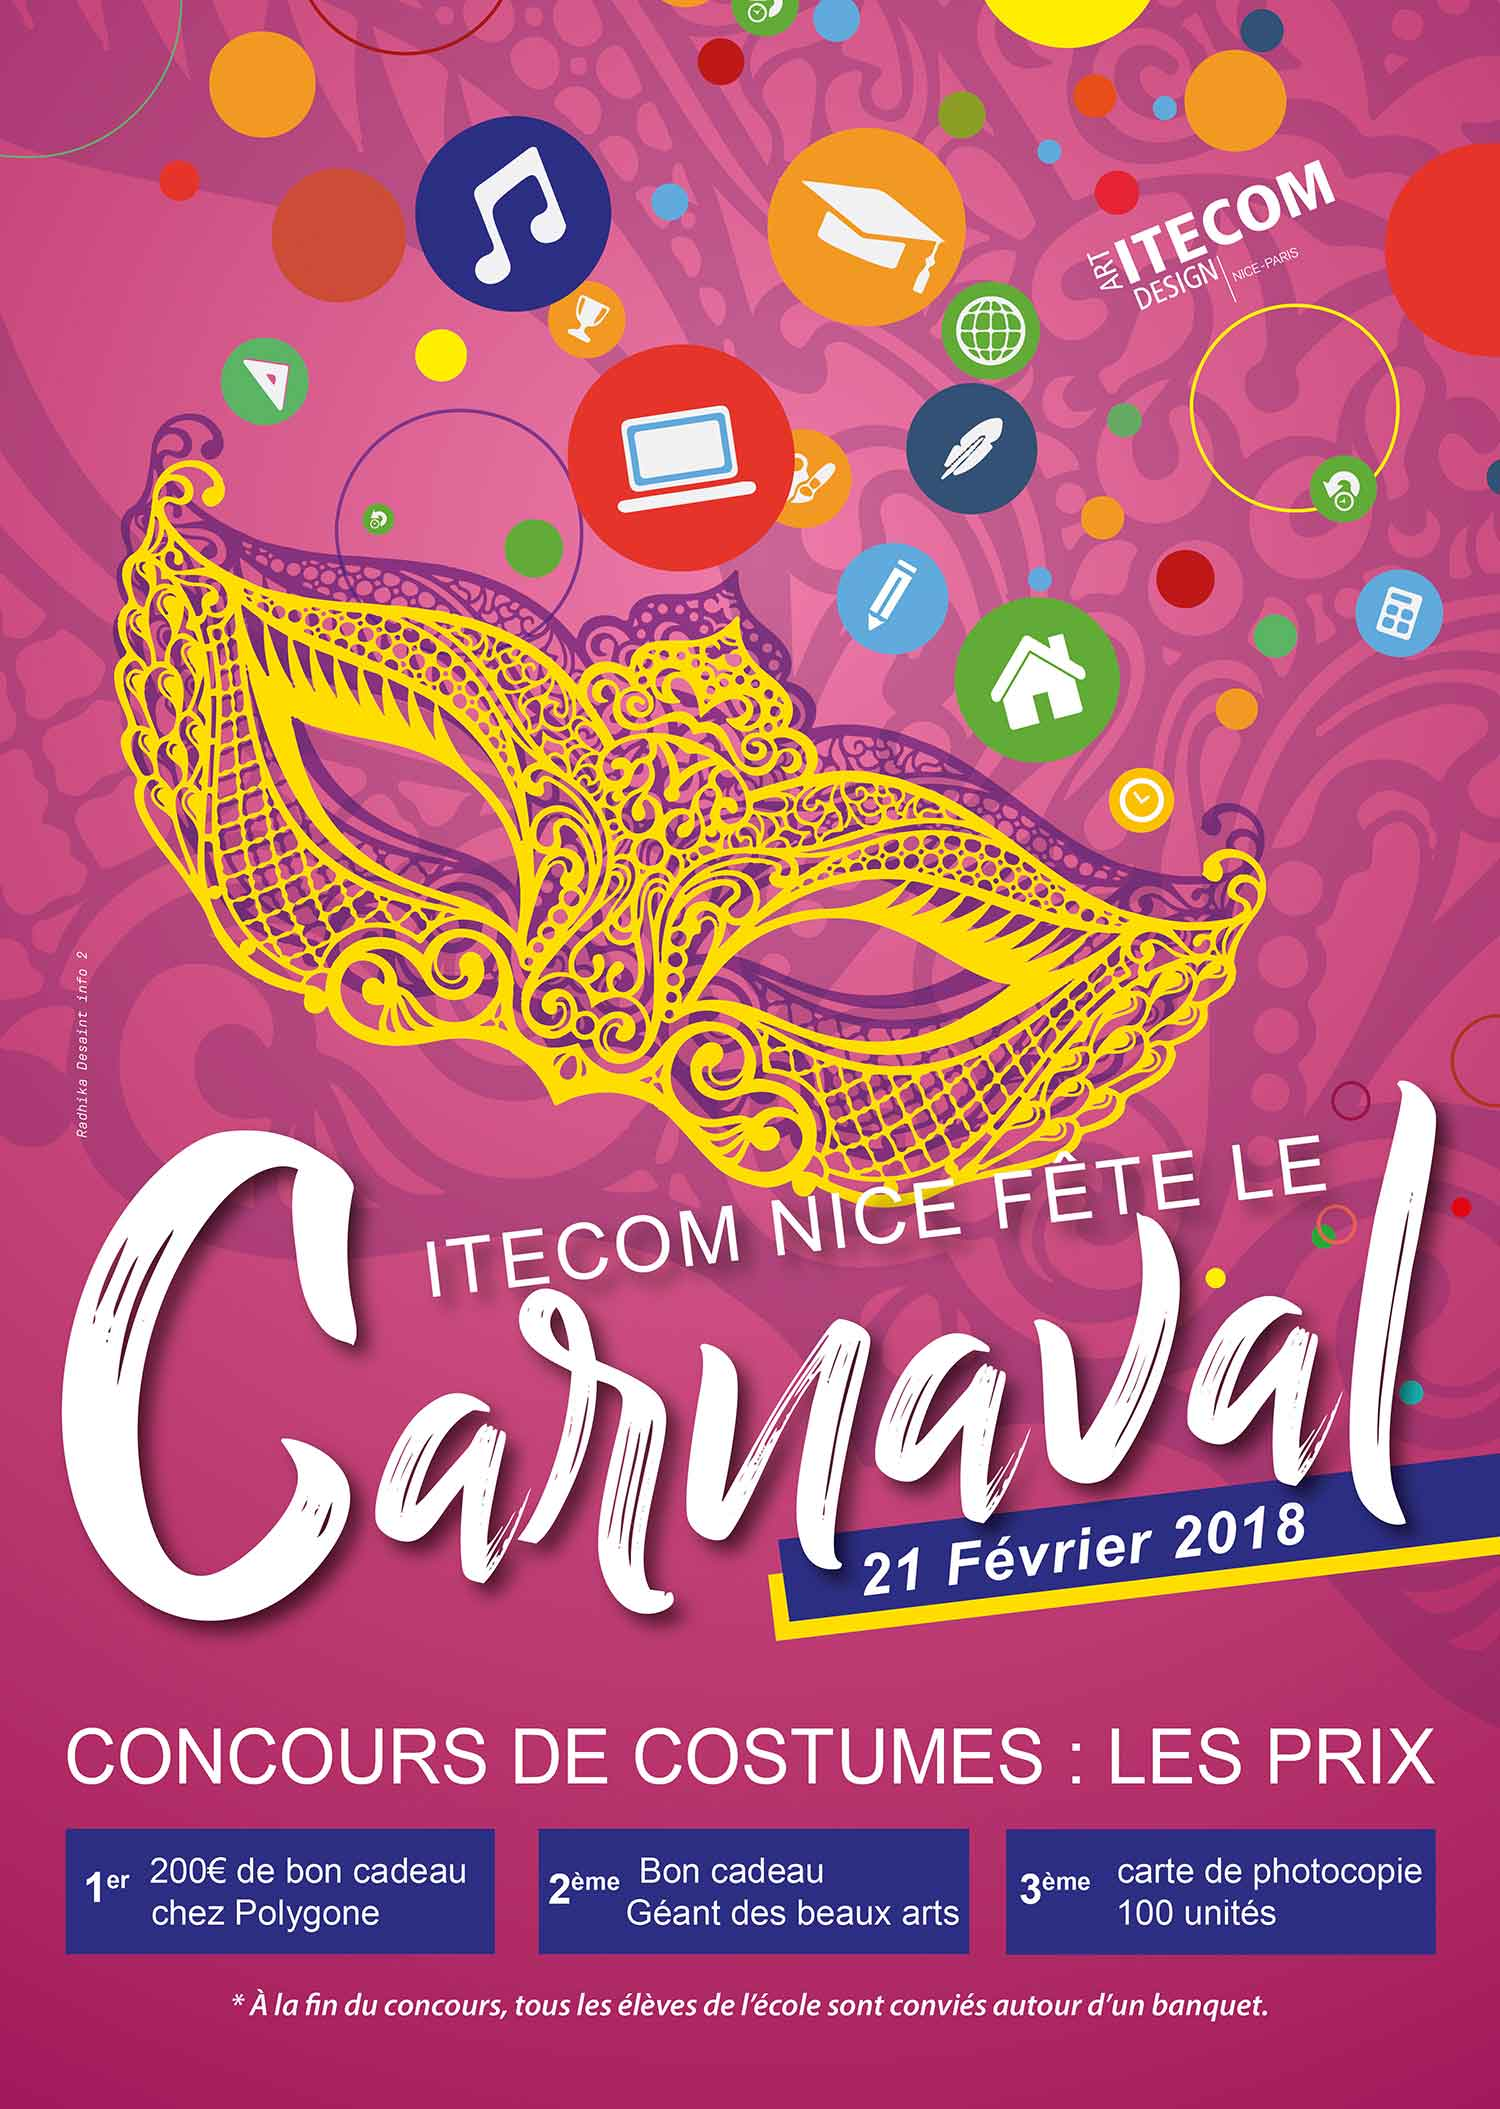 graphiste-radhika-publicite-nice-affiche-carnaval-rose-